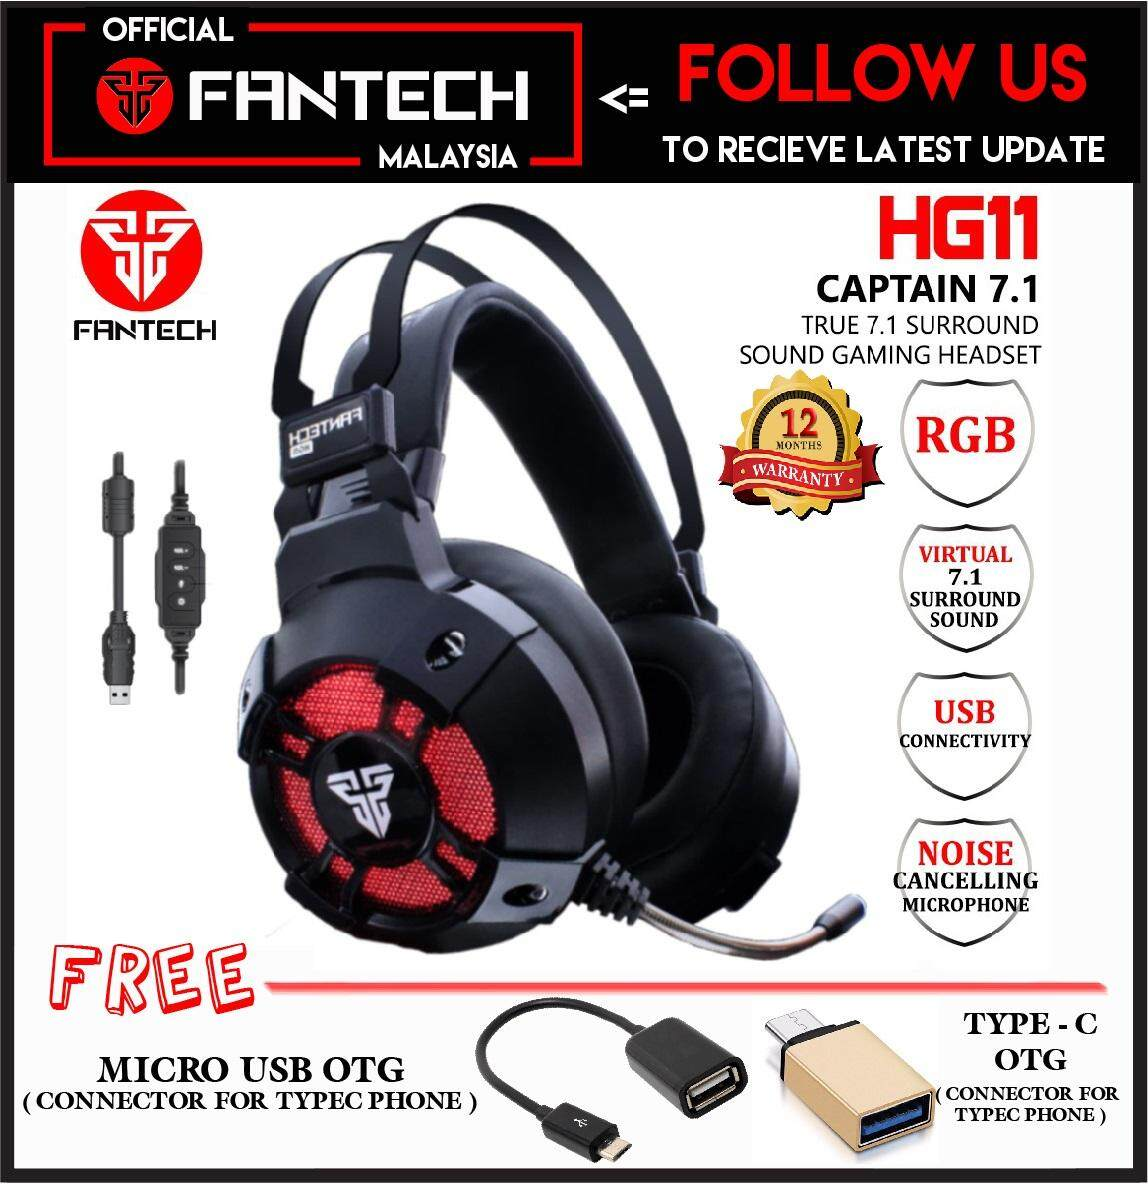 dc6602ddc3d FANTECH HG11 (CAPTAIN 7.1) Advance 7.1 Virtual Surround Sound Engine USB  Power Full Size